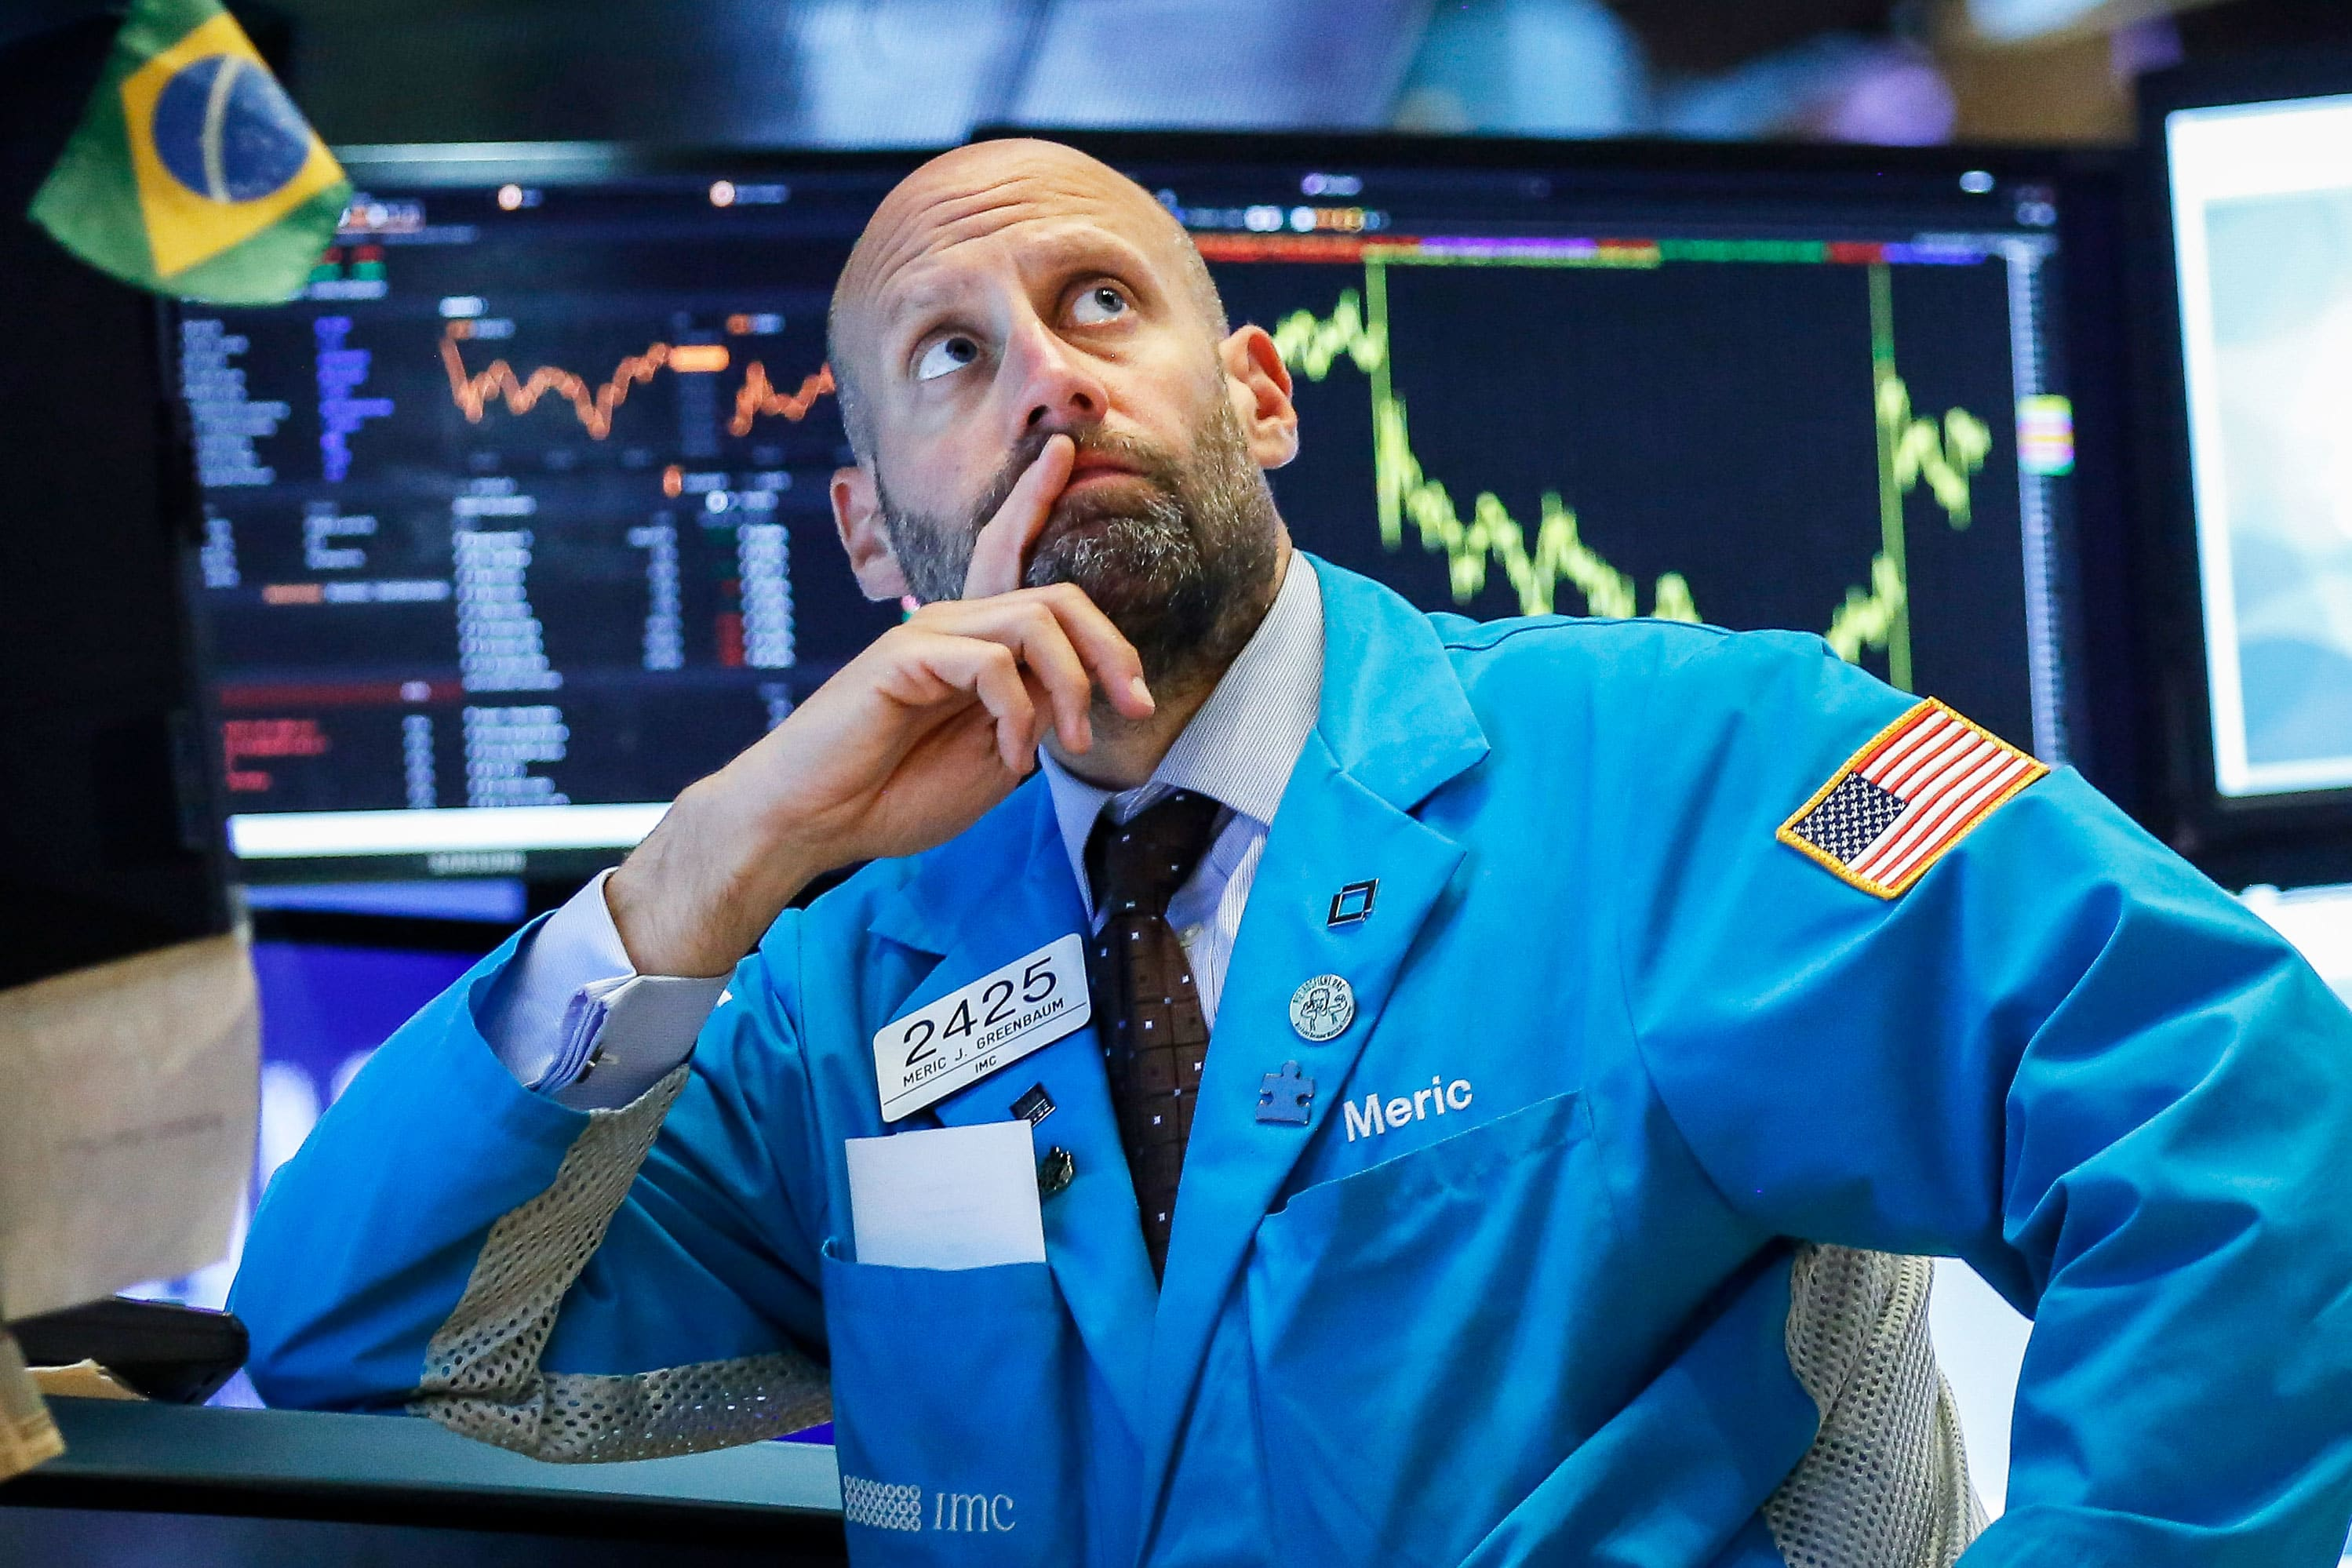 Stocks fall from record highs after strong jobs report dampens hope of a Fed rate cut